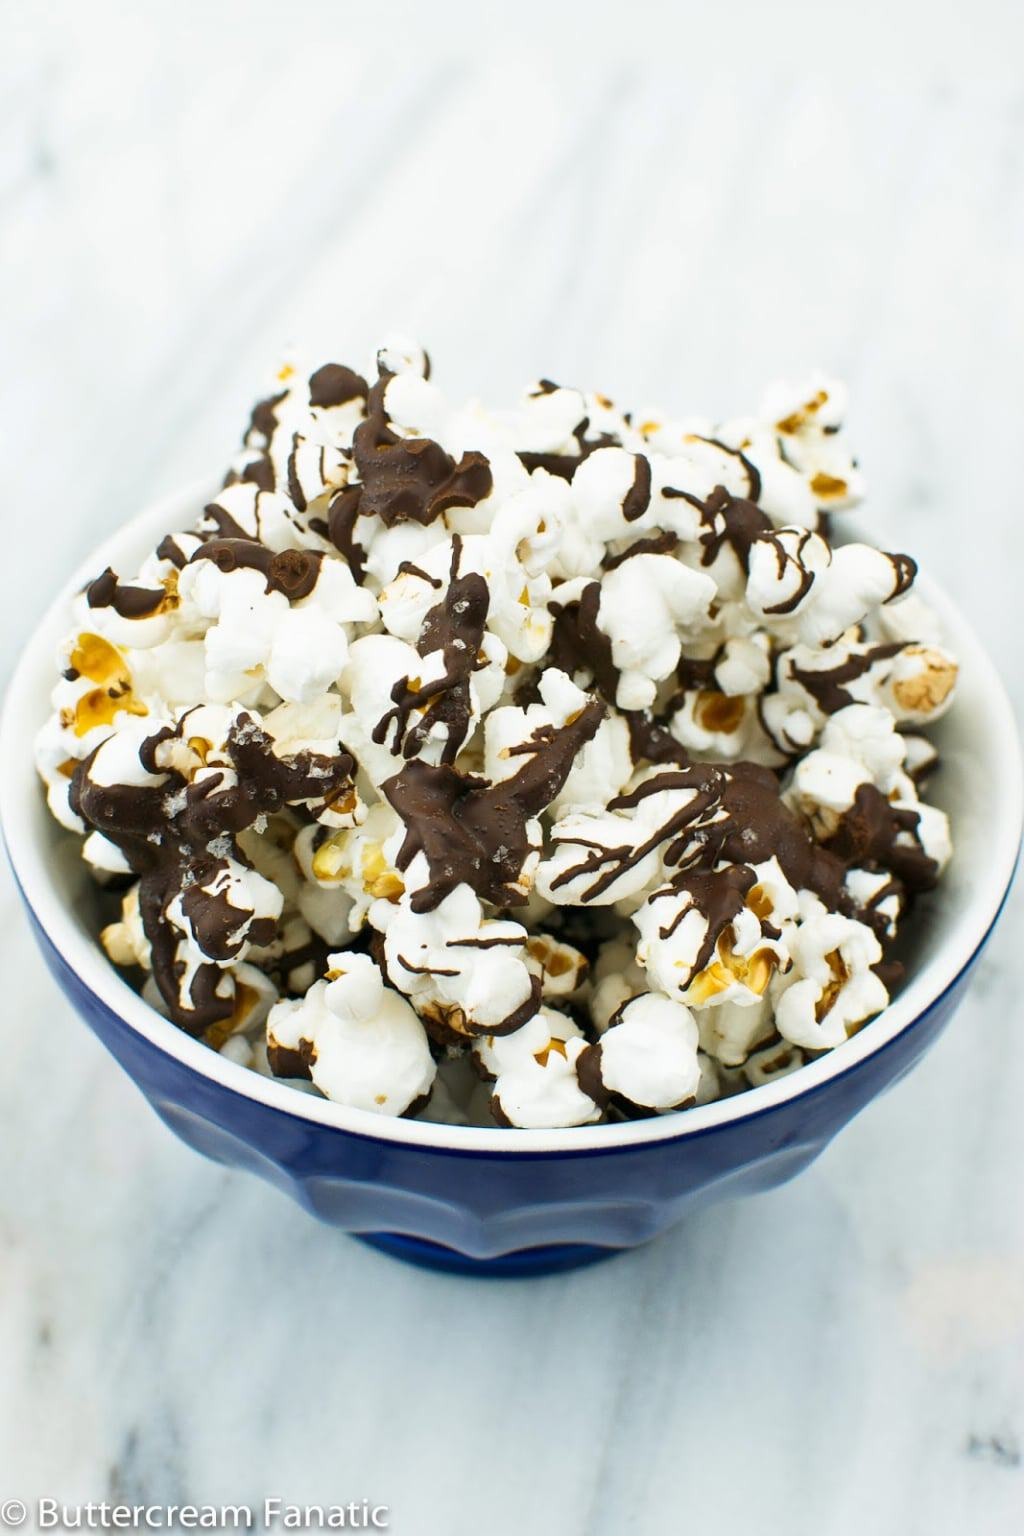 Sweet and Savory Chocolate Sea Salt Popcorn made from three simple ingredients. It's a healthy and satisfying gluten-free snack!